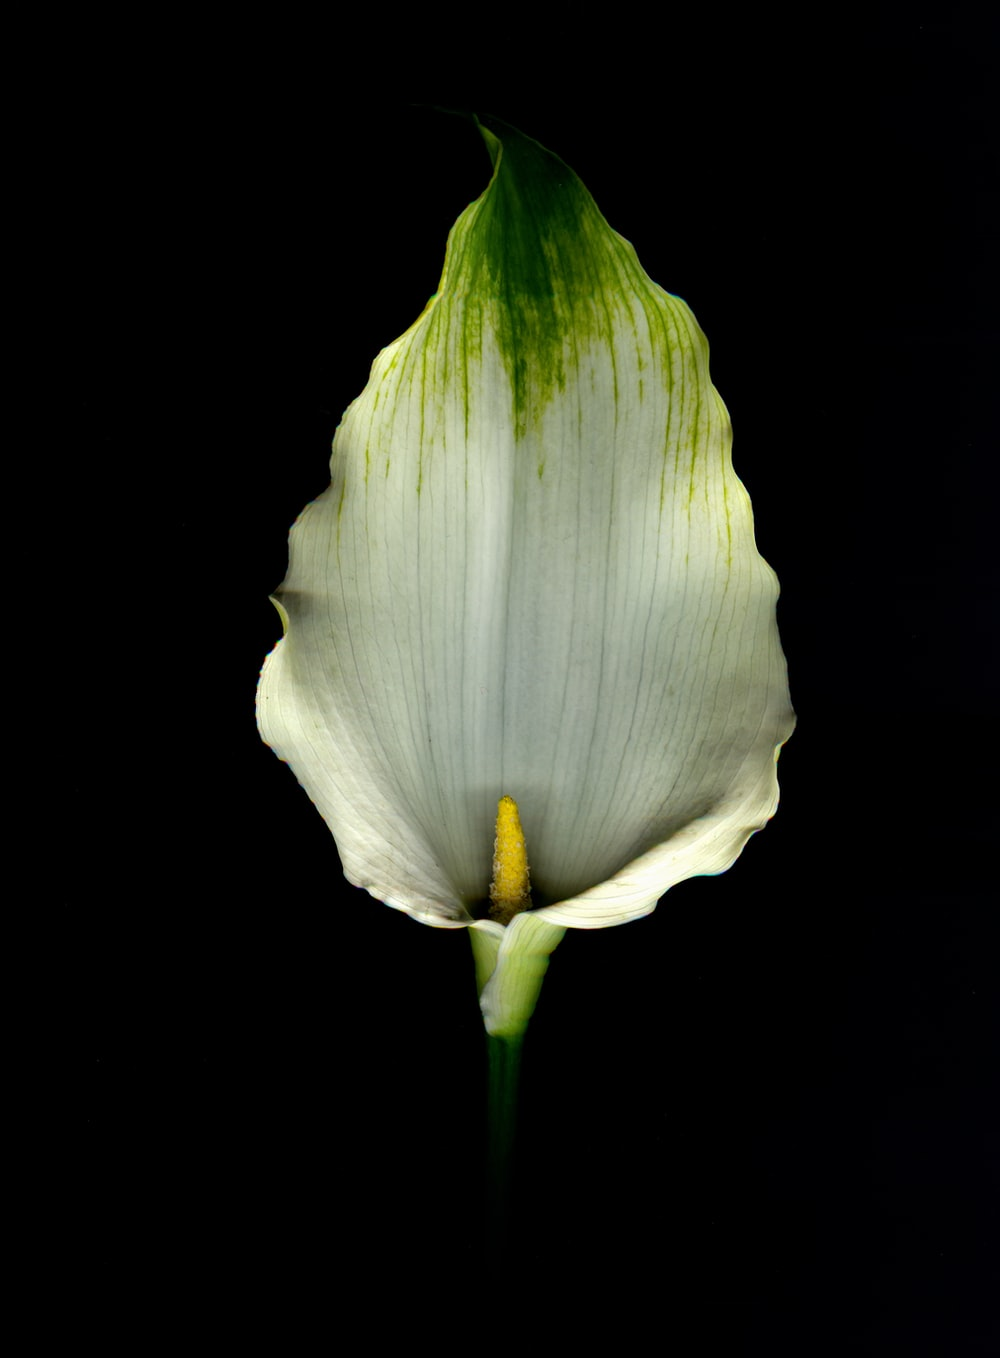 White lily pictures download free images on unsplash closeup photo of white and green laceleaf izmirmasajfo